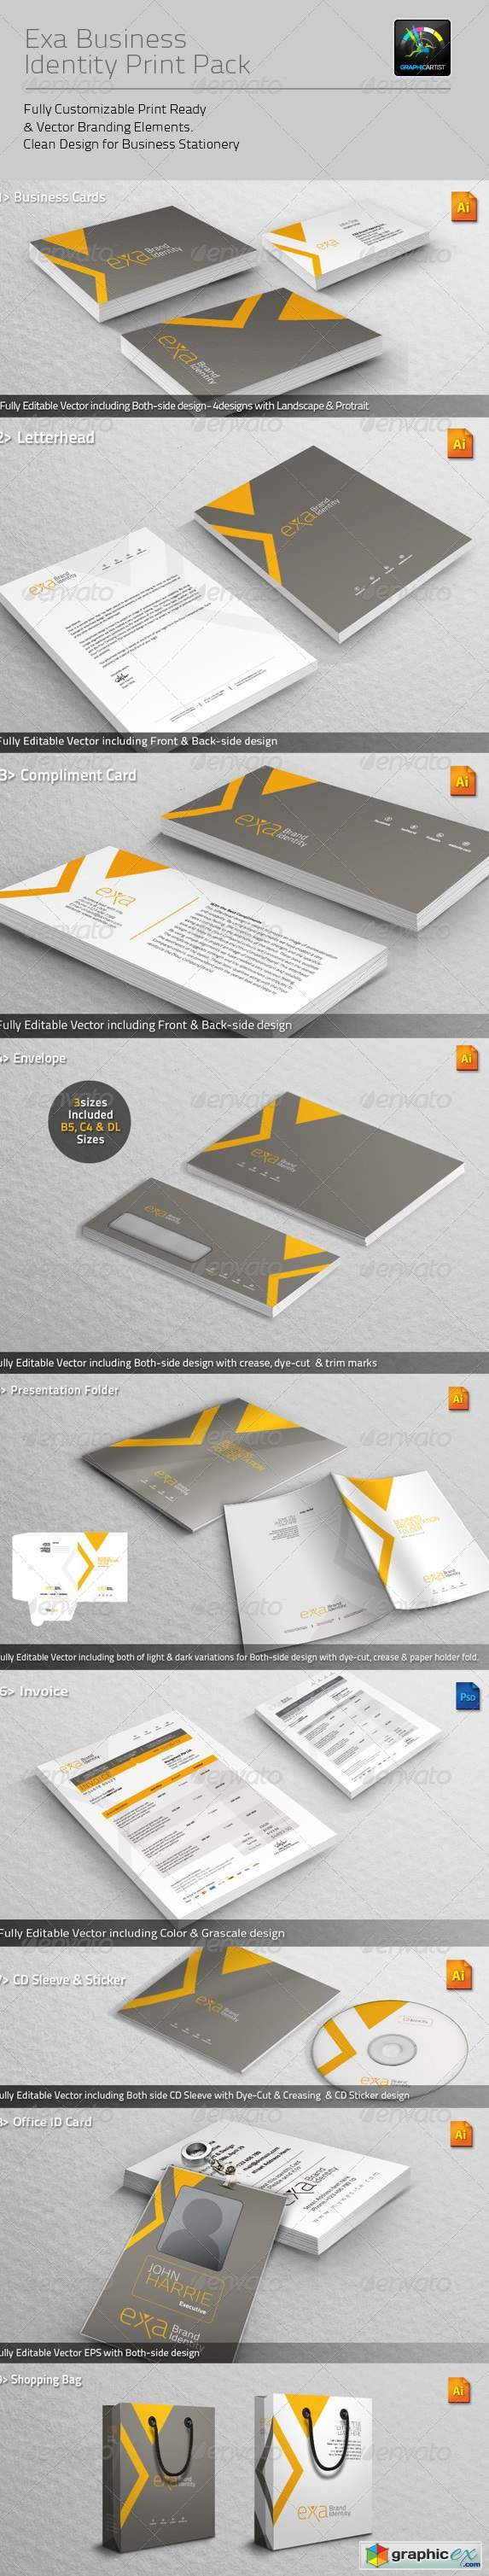 Exa Business Identity Print Pack 4605124